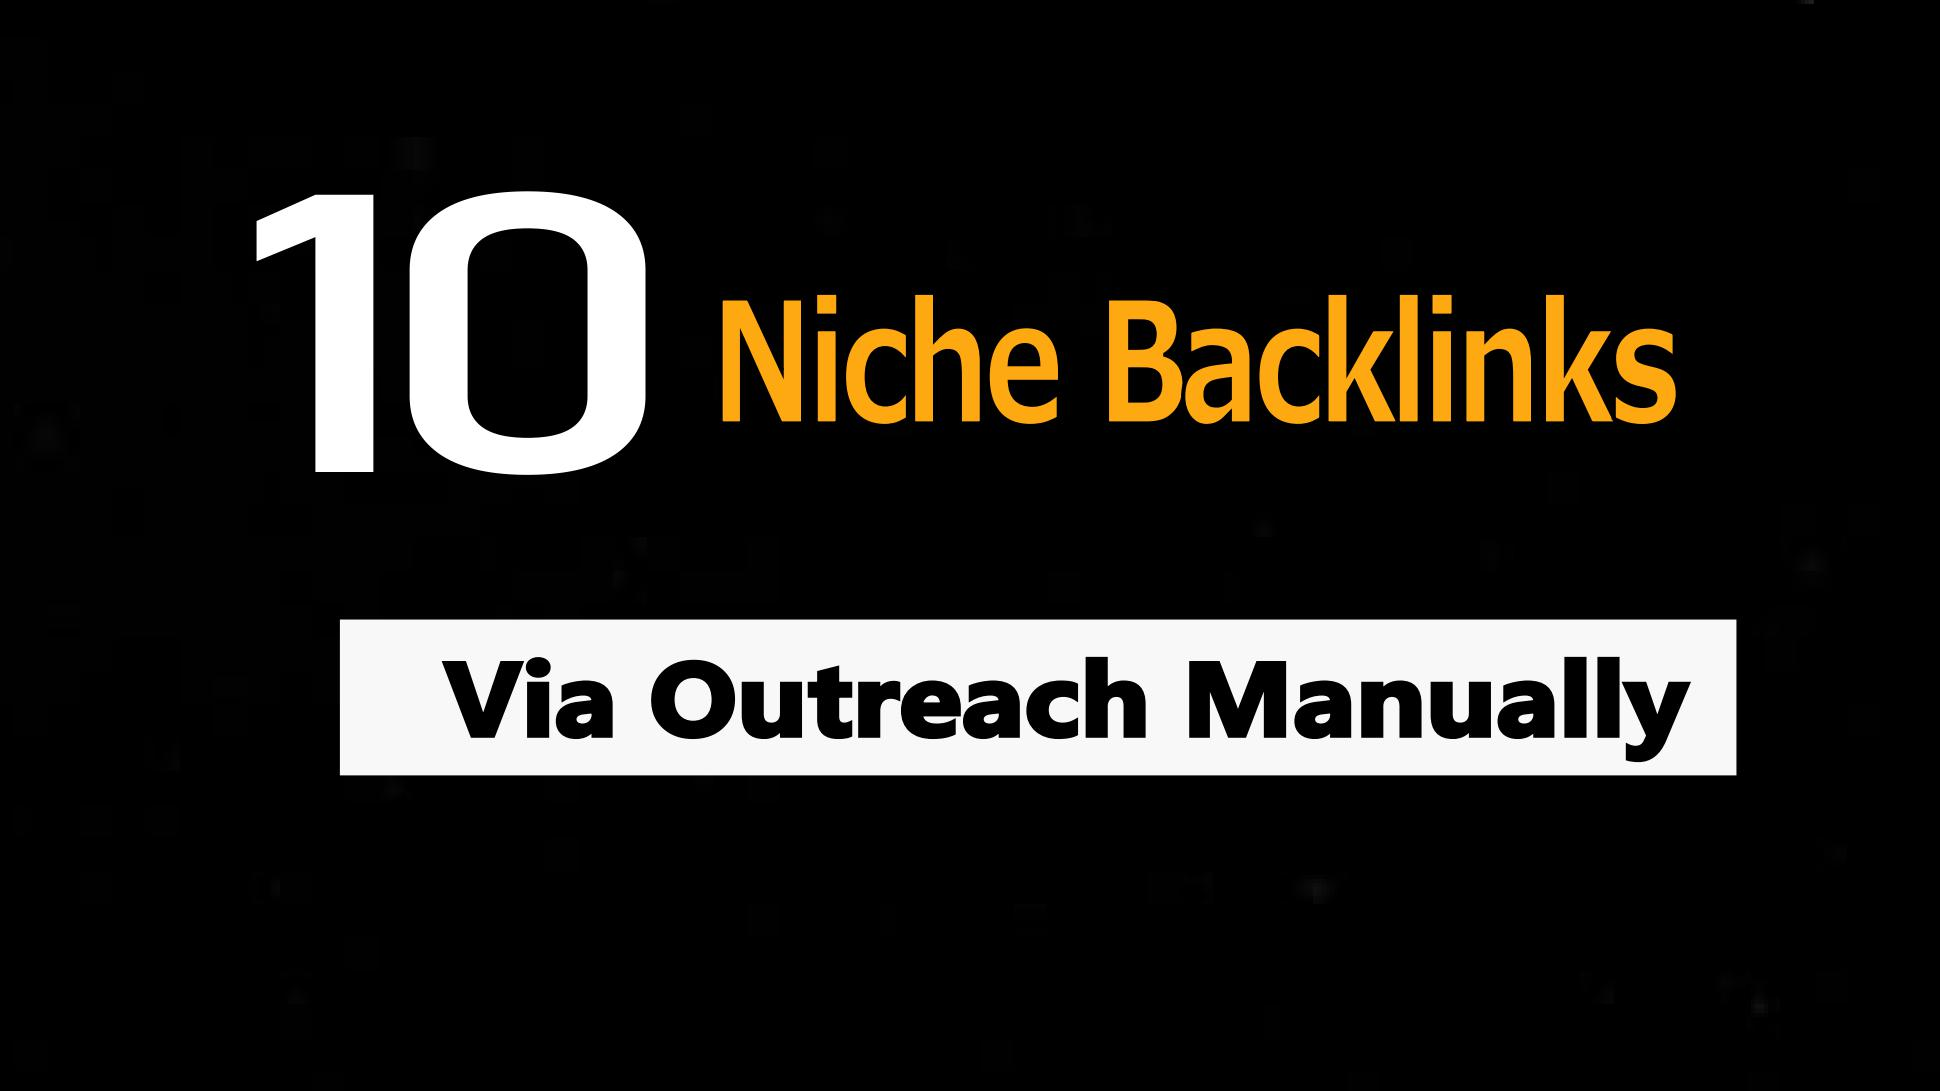 Niche specific Outreach blogging to get 10 best links from quality sites